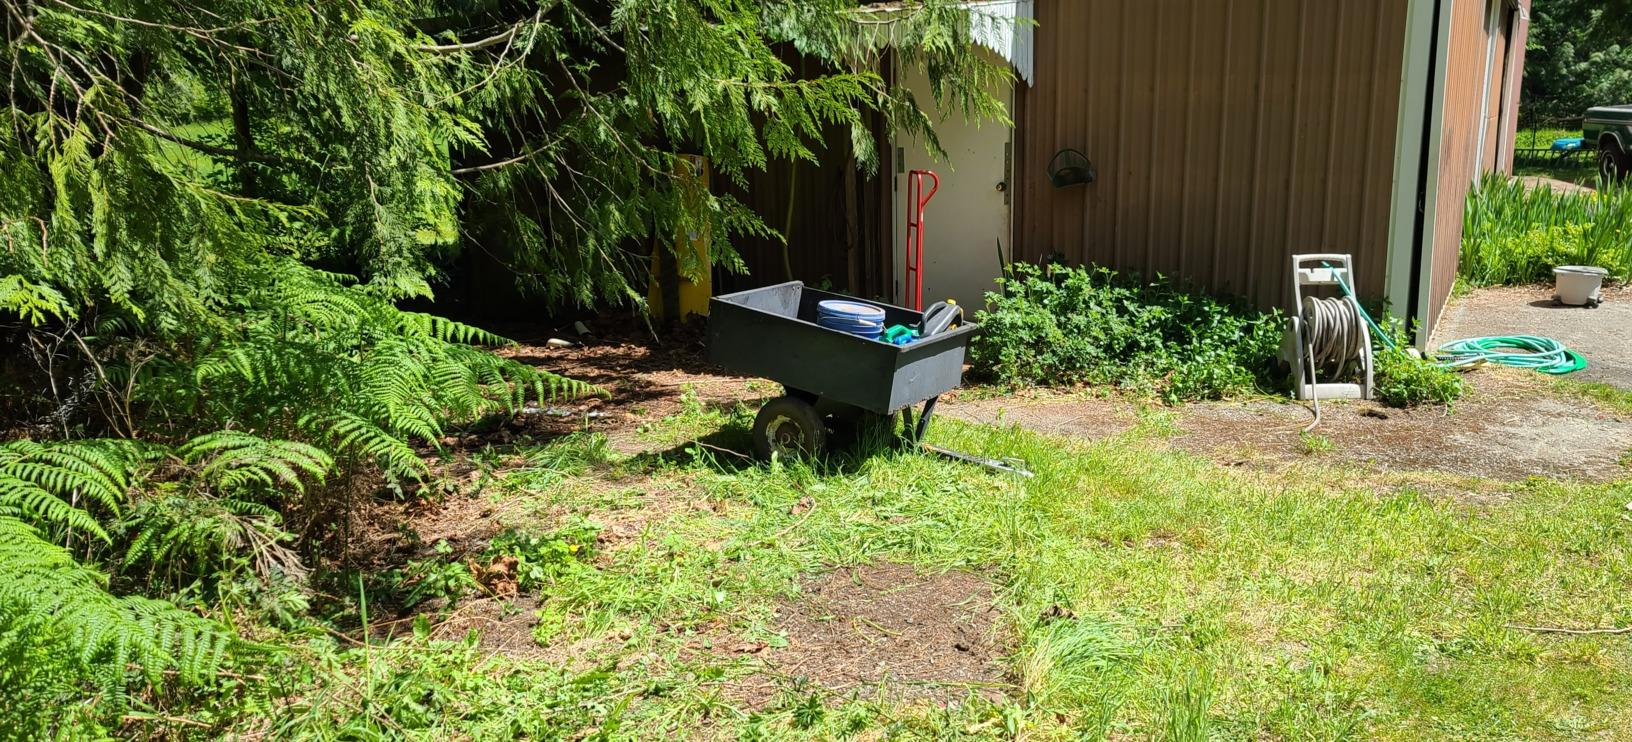 Junk Removal Services in Arlington, WA - After Photo